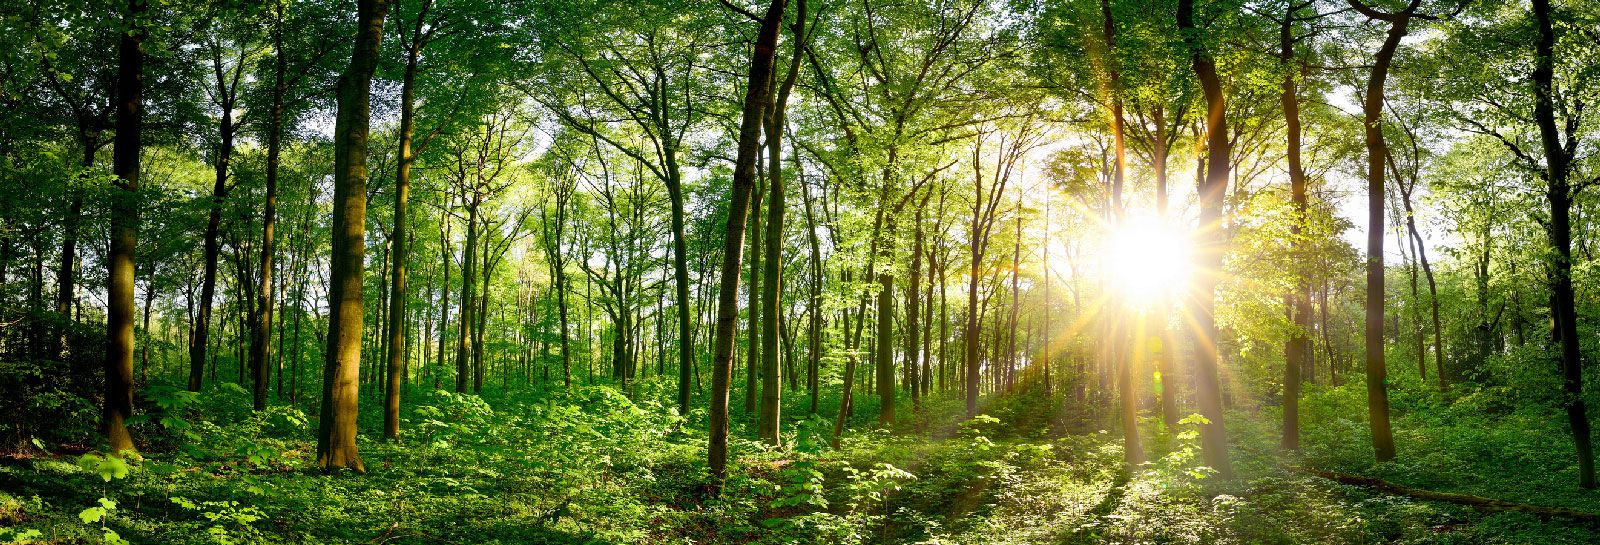 A forest at sunrise banner image